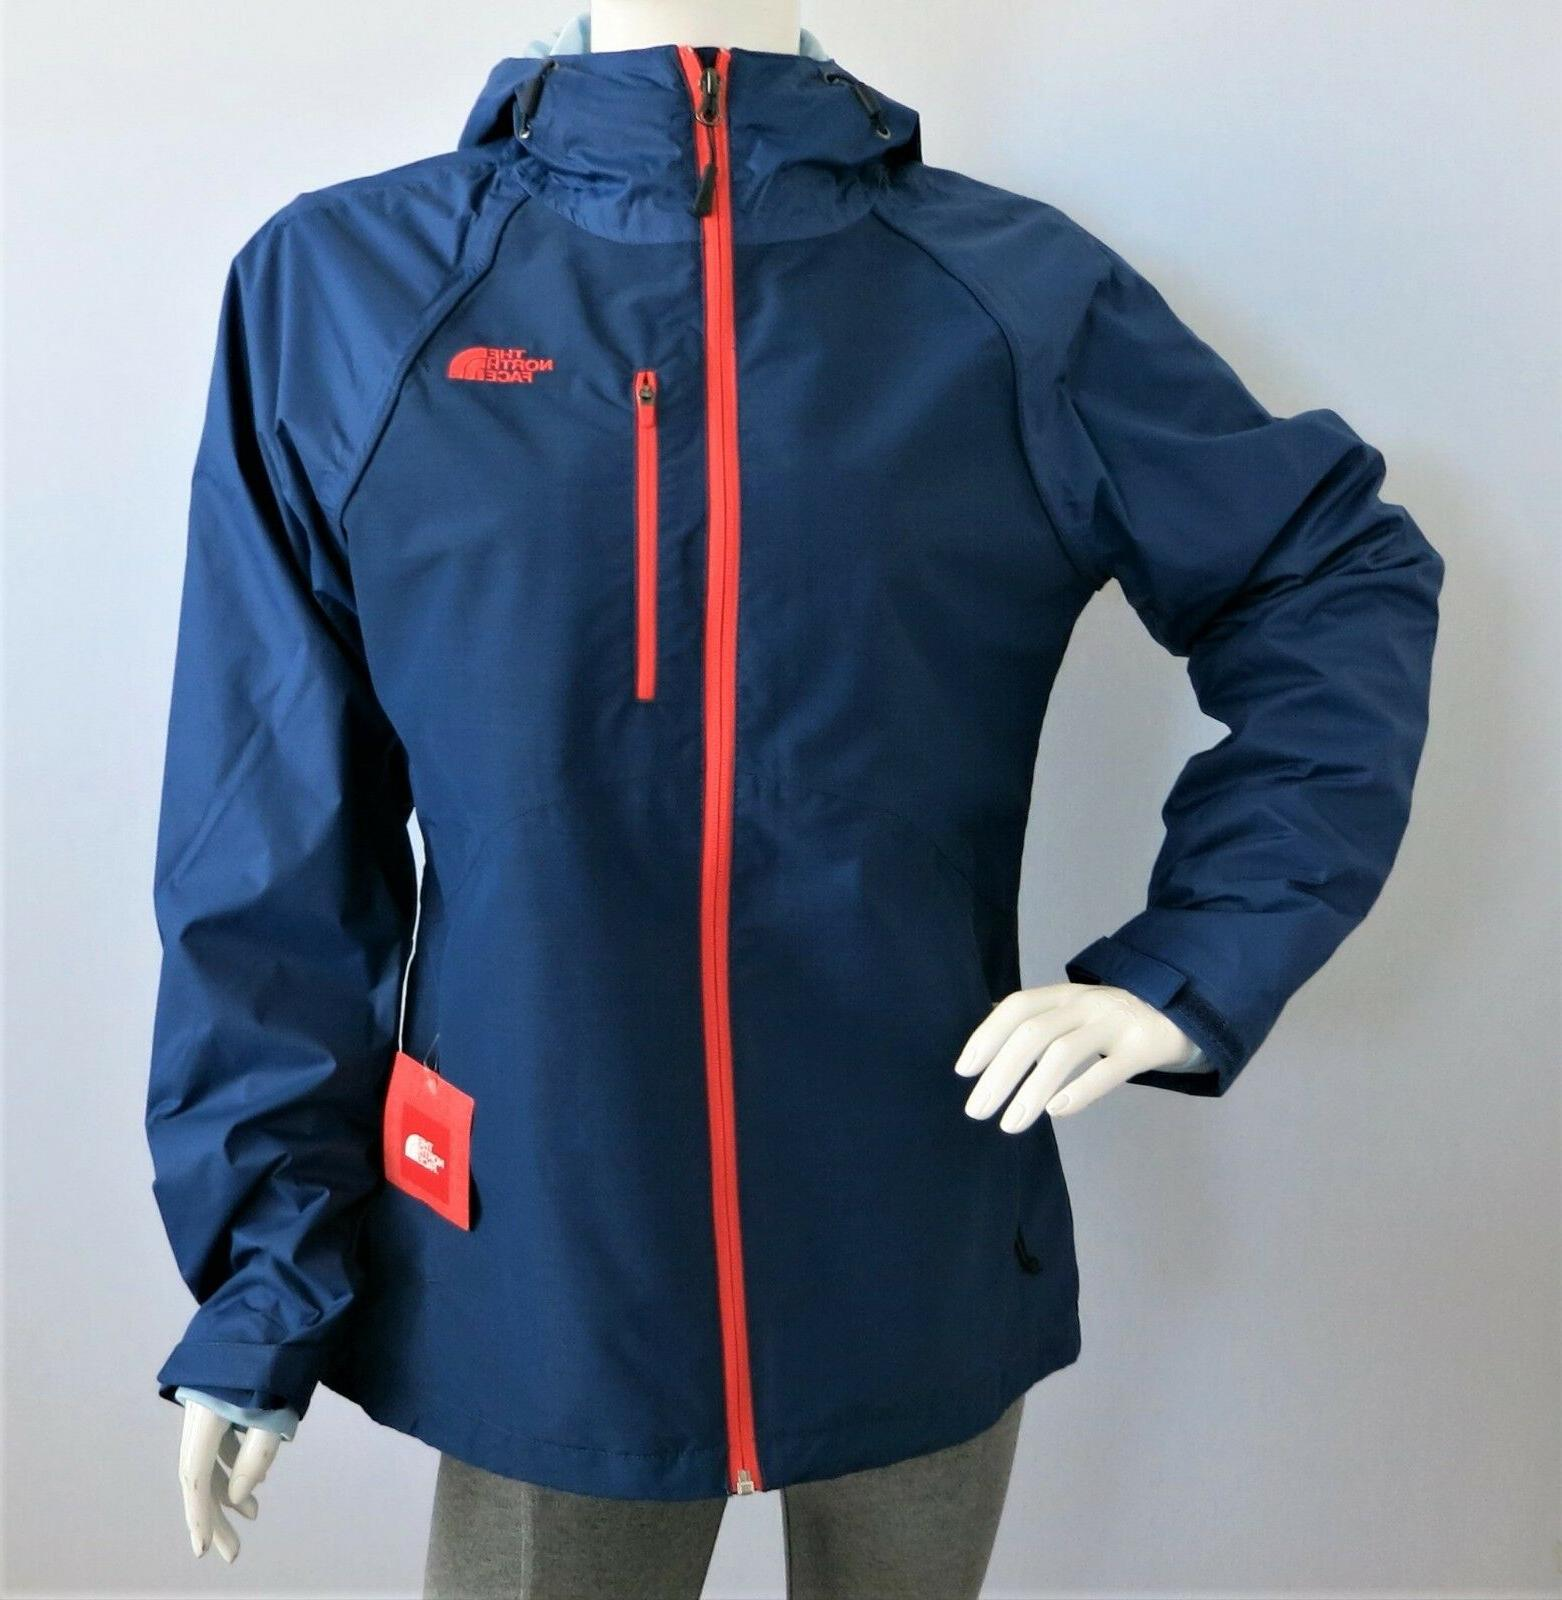 3fff5be13 THE NORTH FACE Women's Cinder Triclimate 3-IN-1 Ski